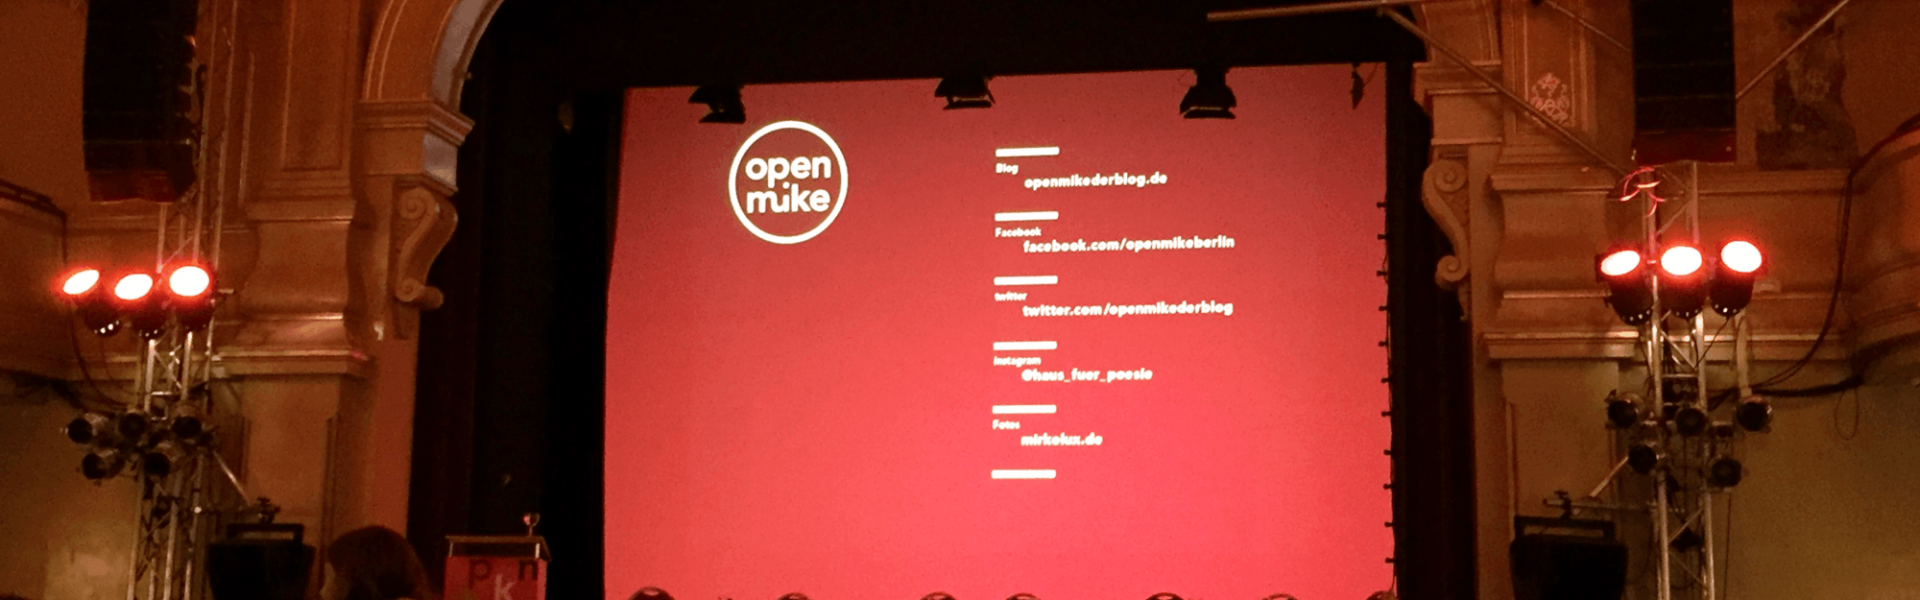 Open Mike, © Litradio